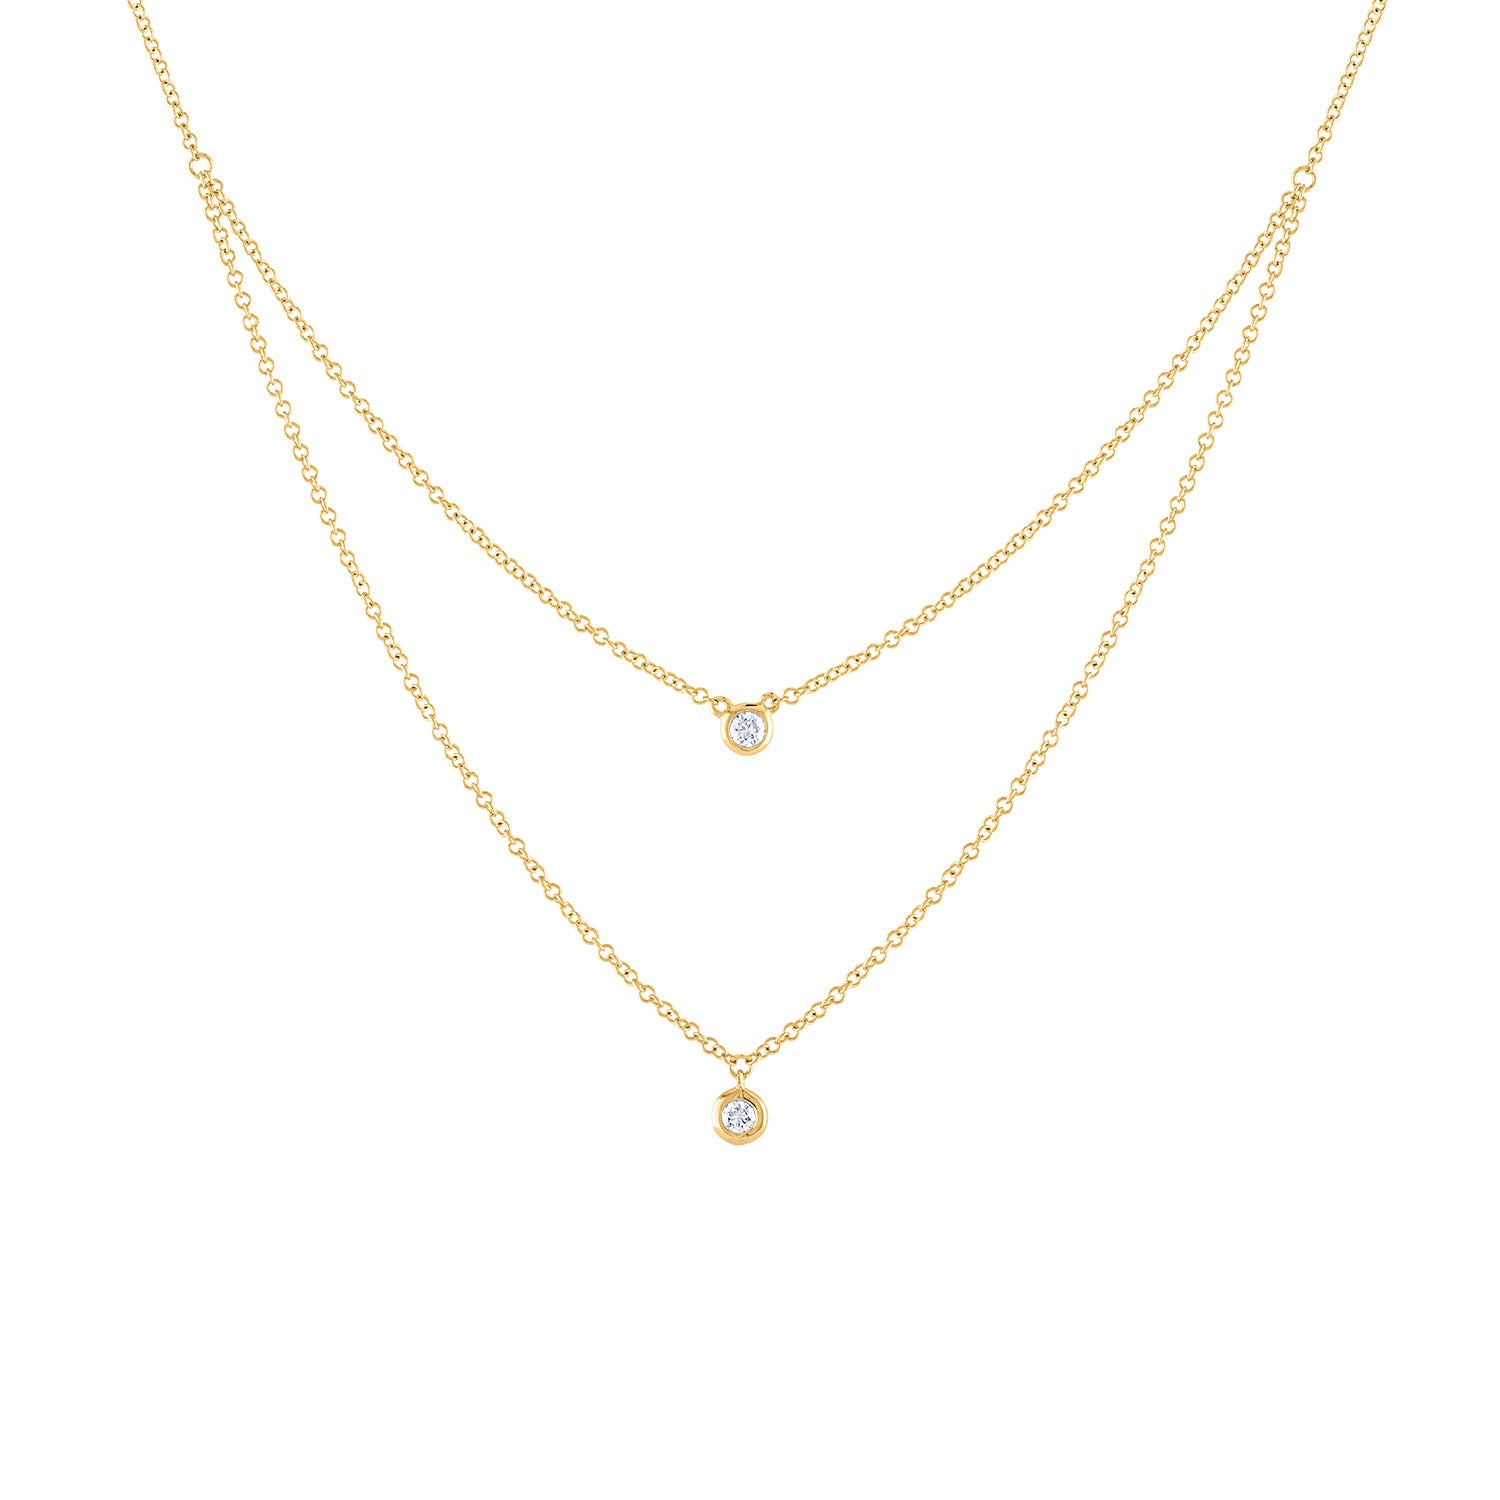 14k Yellow Gold diamond double bezel necklace